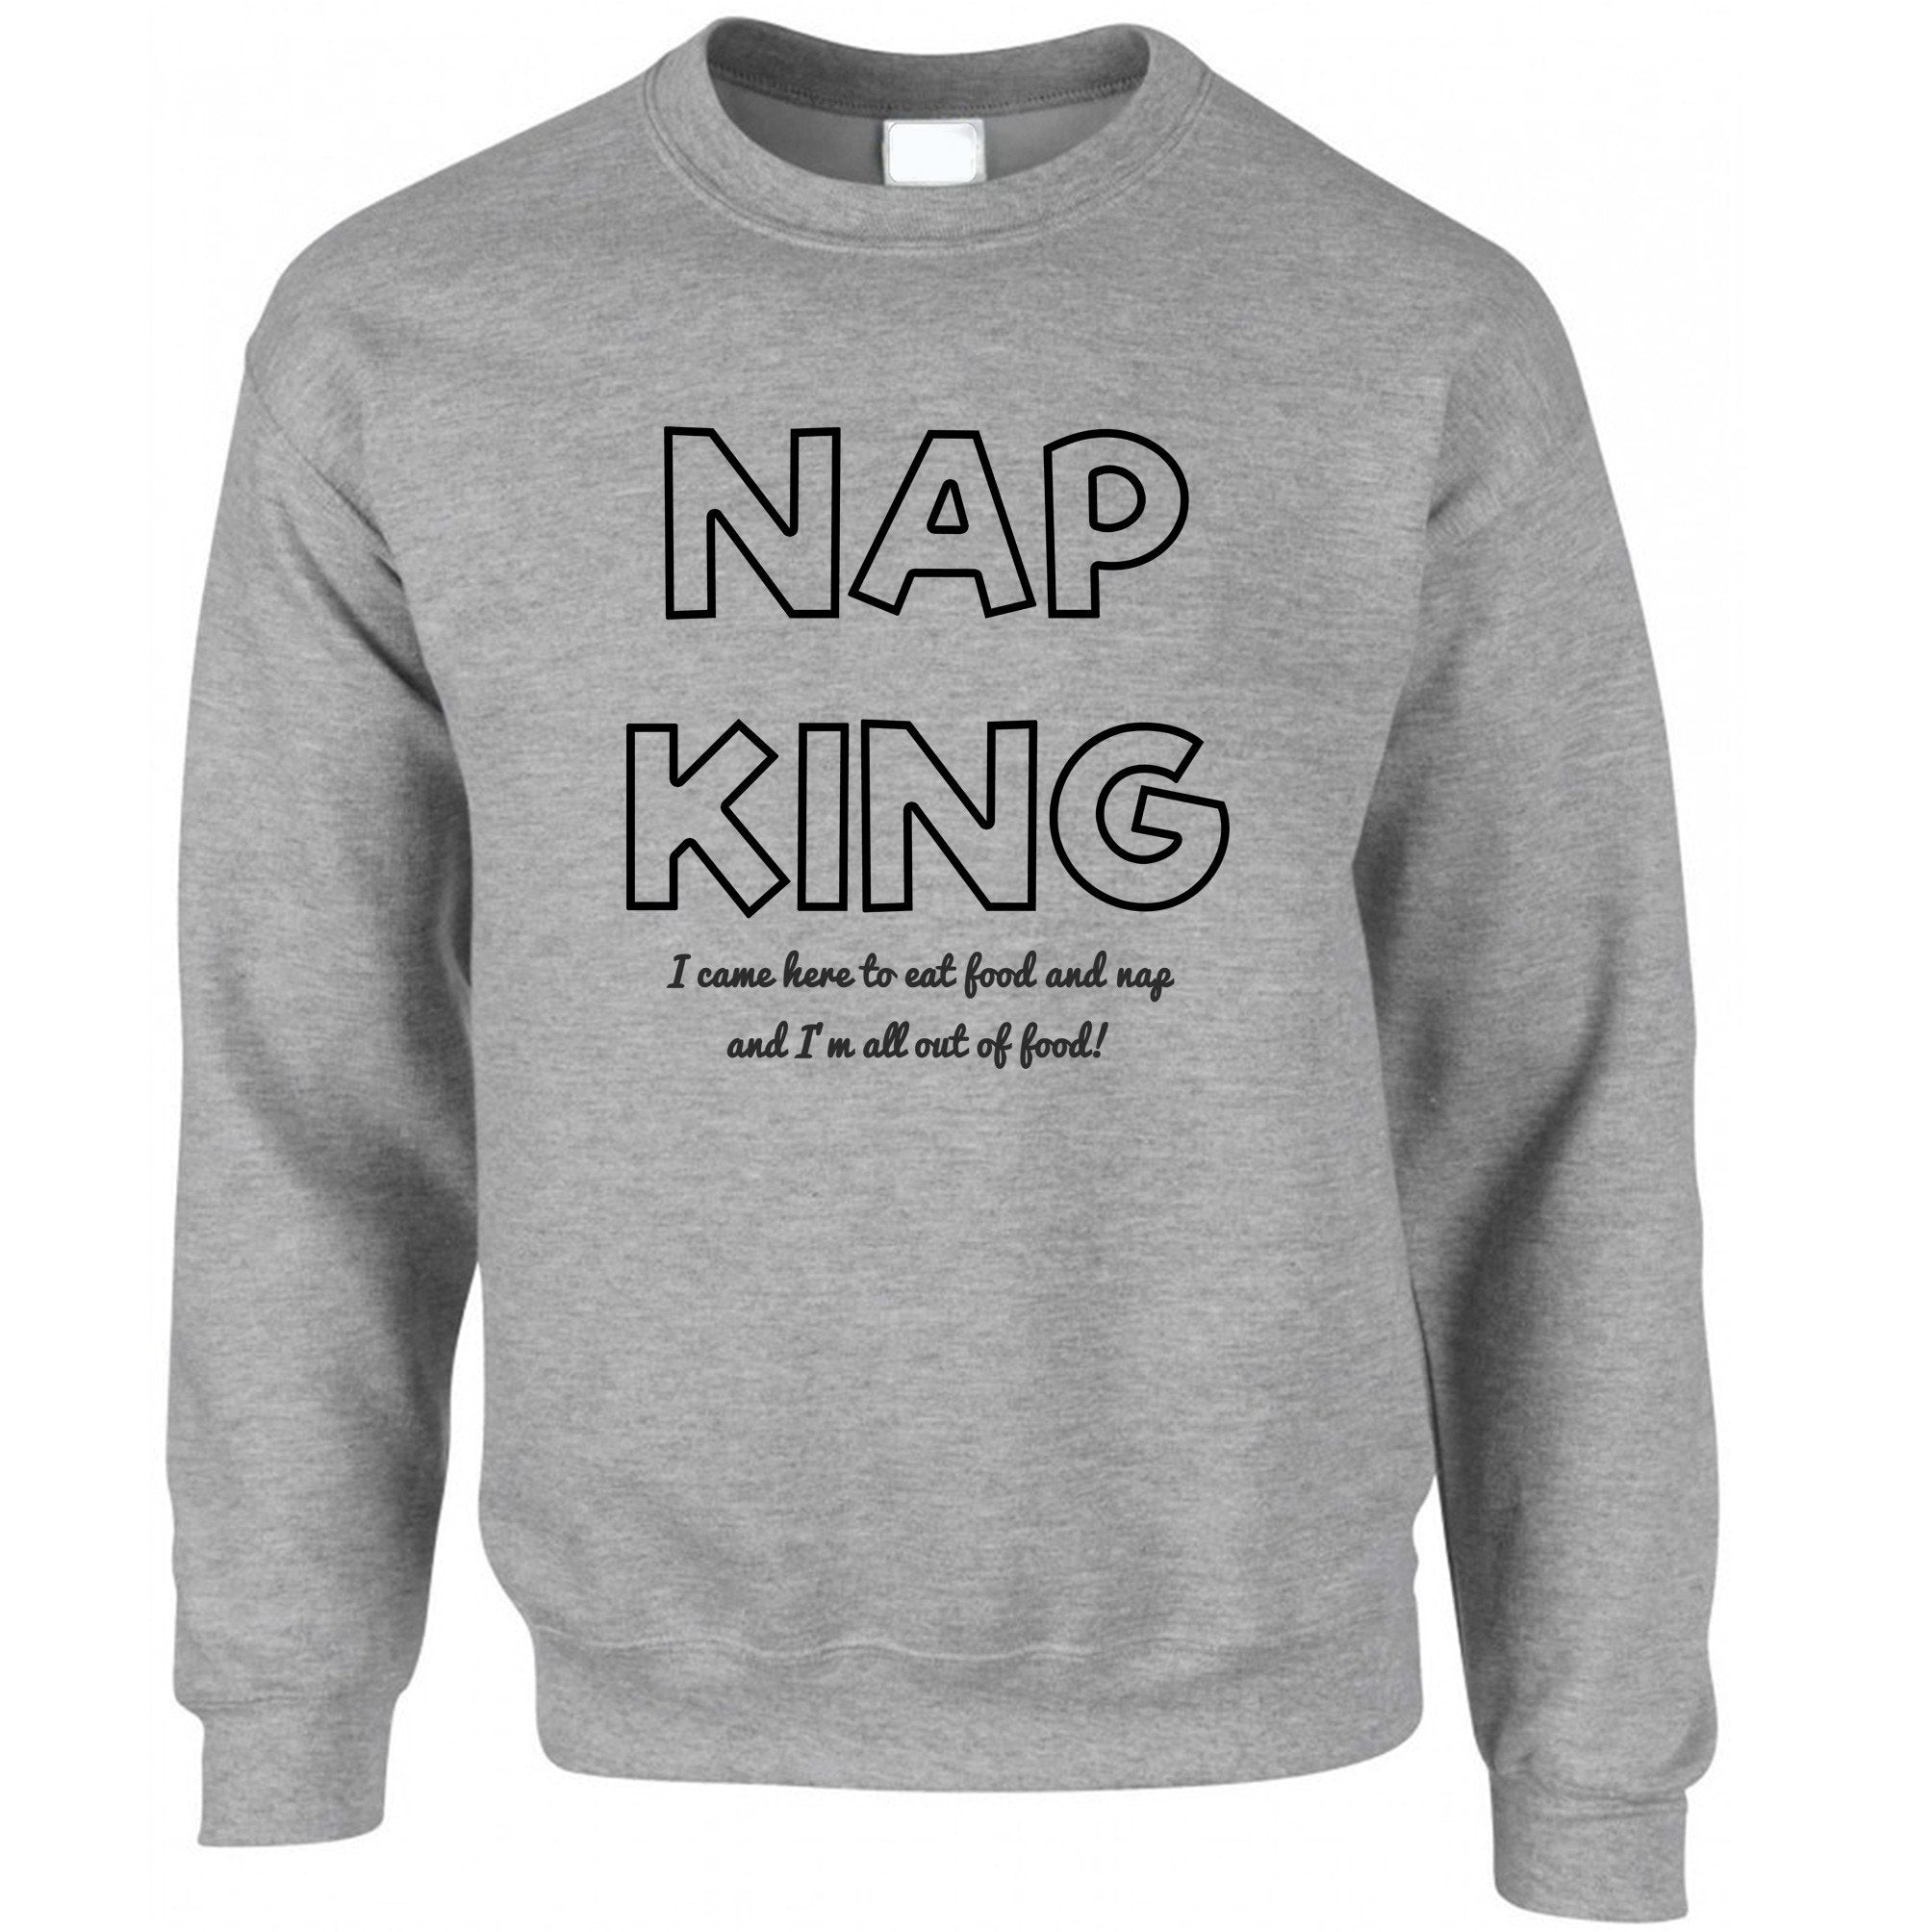 Novelty Slogan Jumper Nap King, Eat Food And Sleep Sweatshirt Sweater